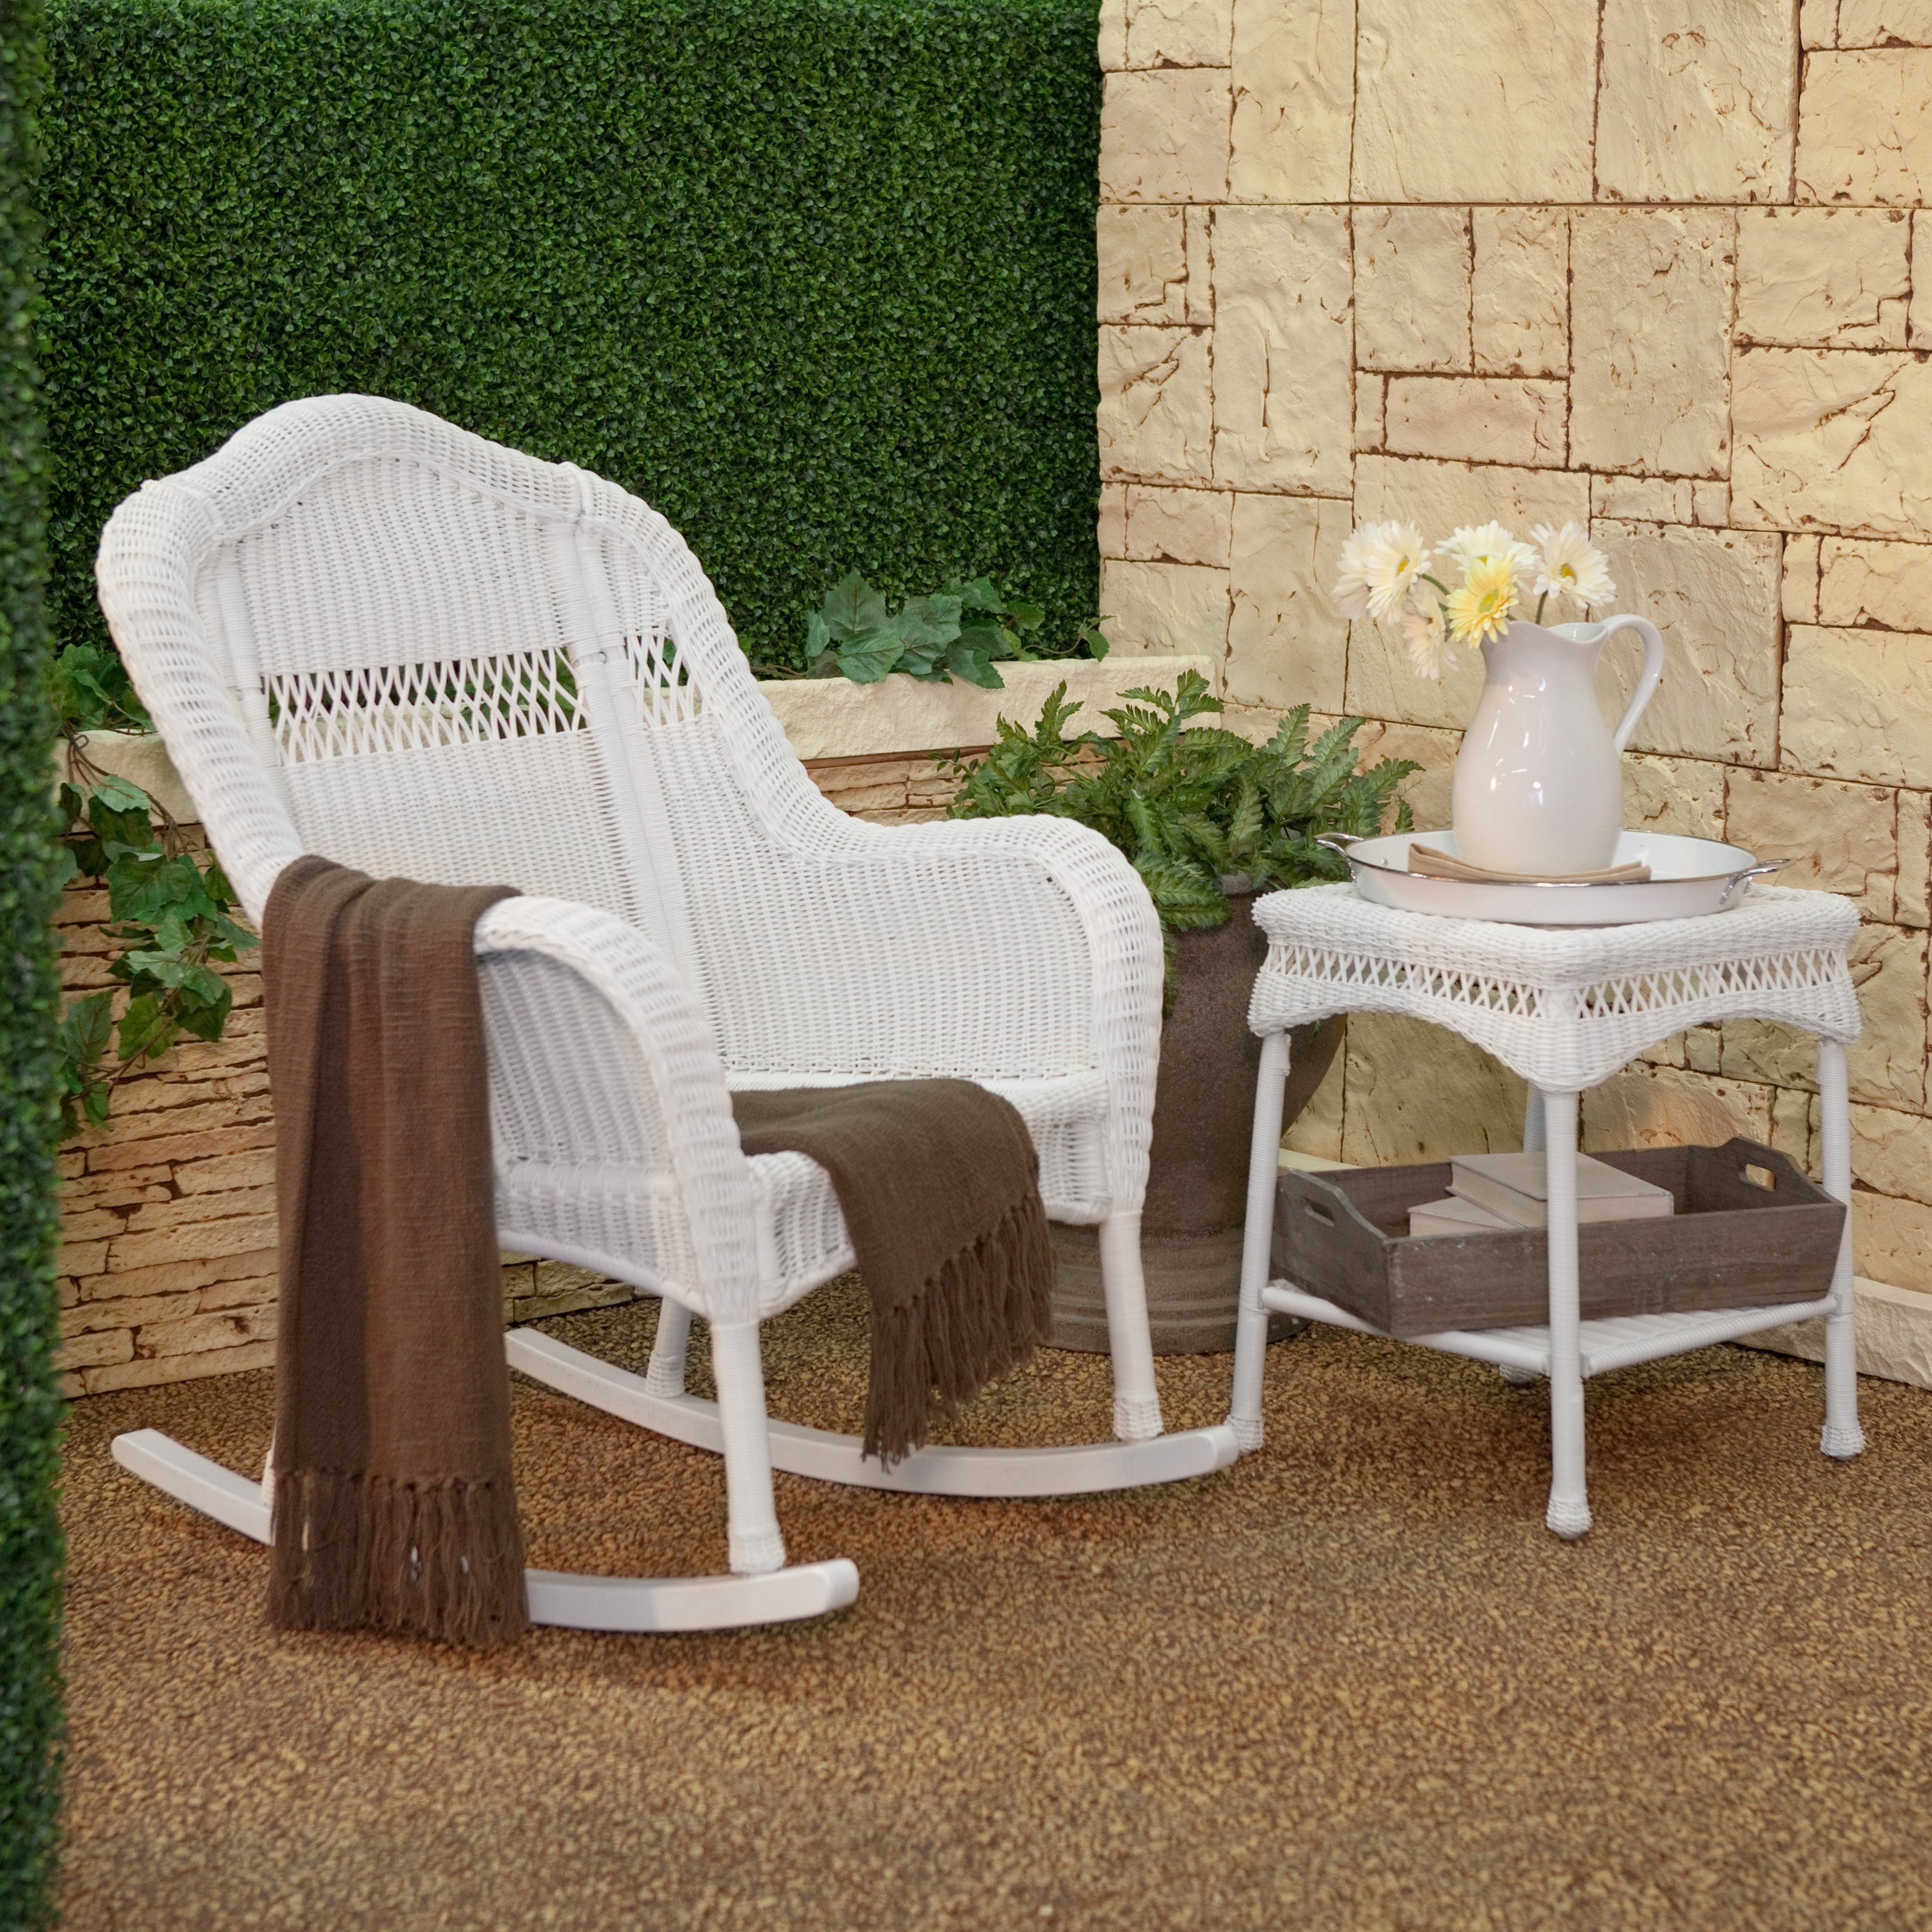 Resin Patio Rocking Chairs Regarding Latest Coral Coast Casco Bay Resin Wicker Rocking Chair With Cushion Option (View 5 of 20)